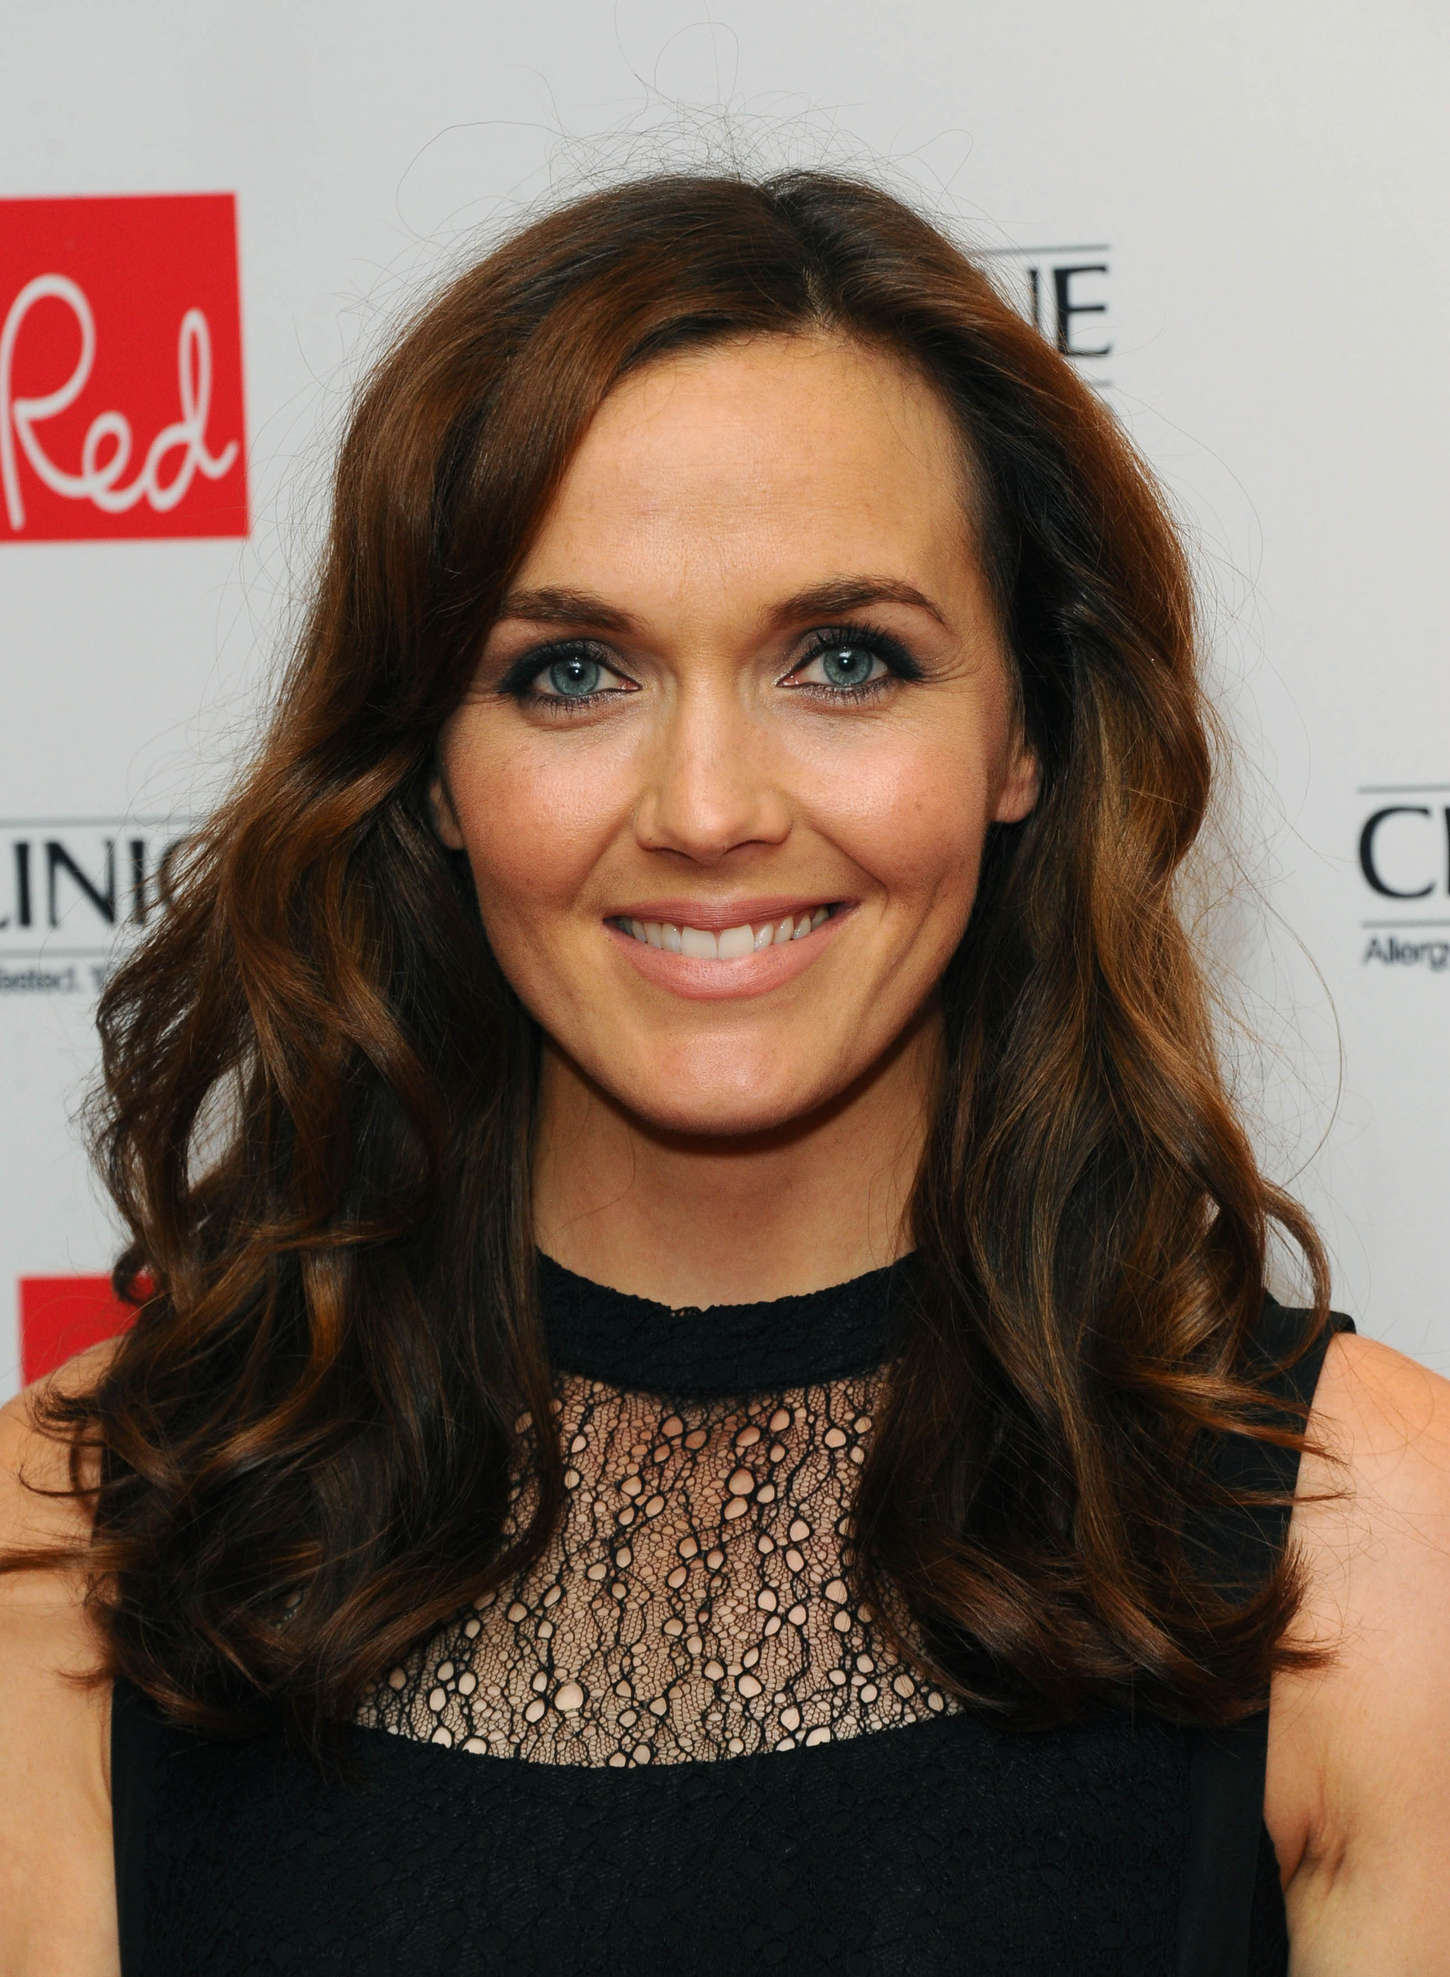 Victoria Pendleton Red Magazine Women Of The Year Awards in London